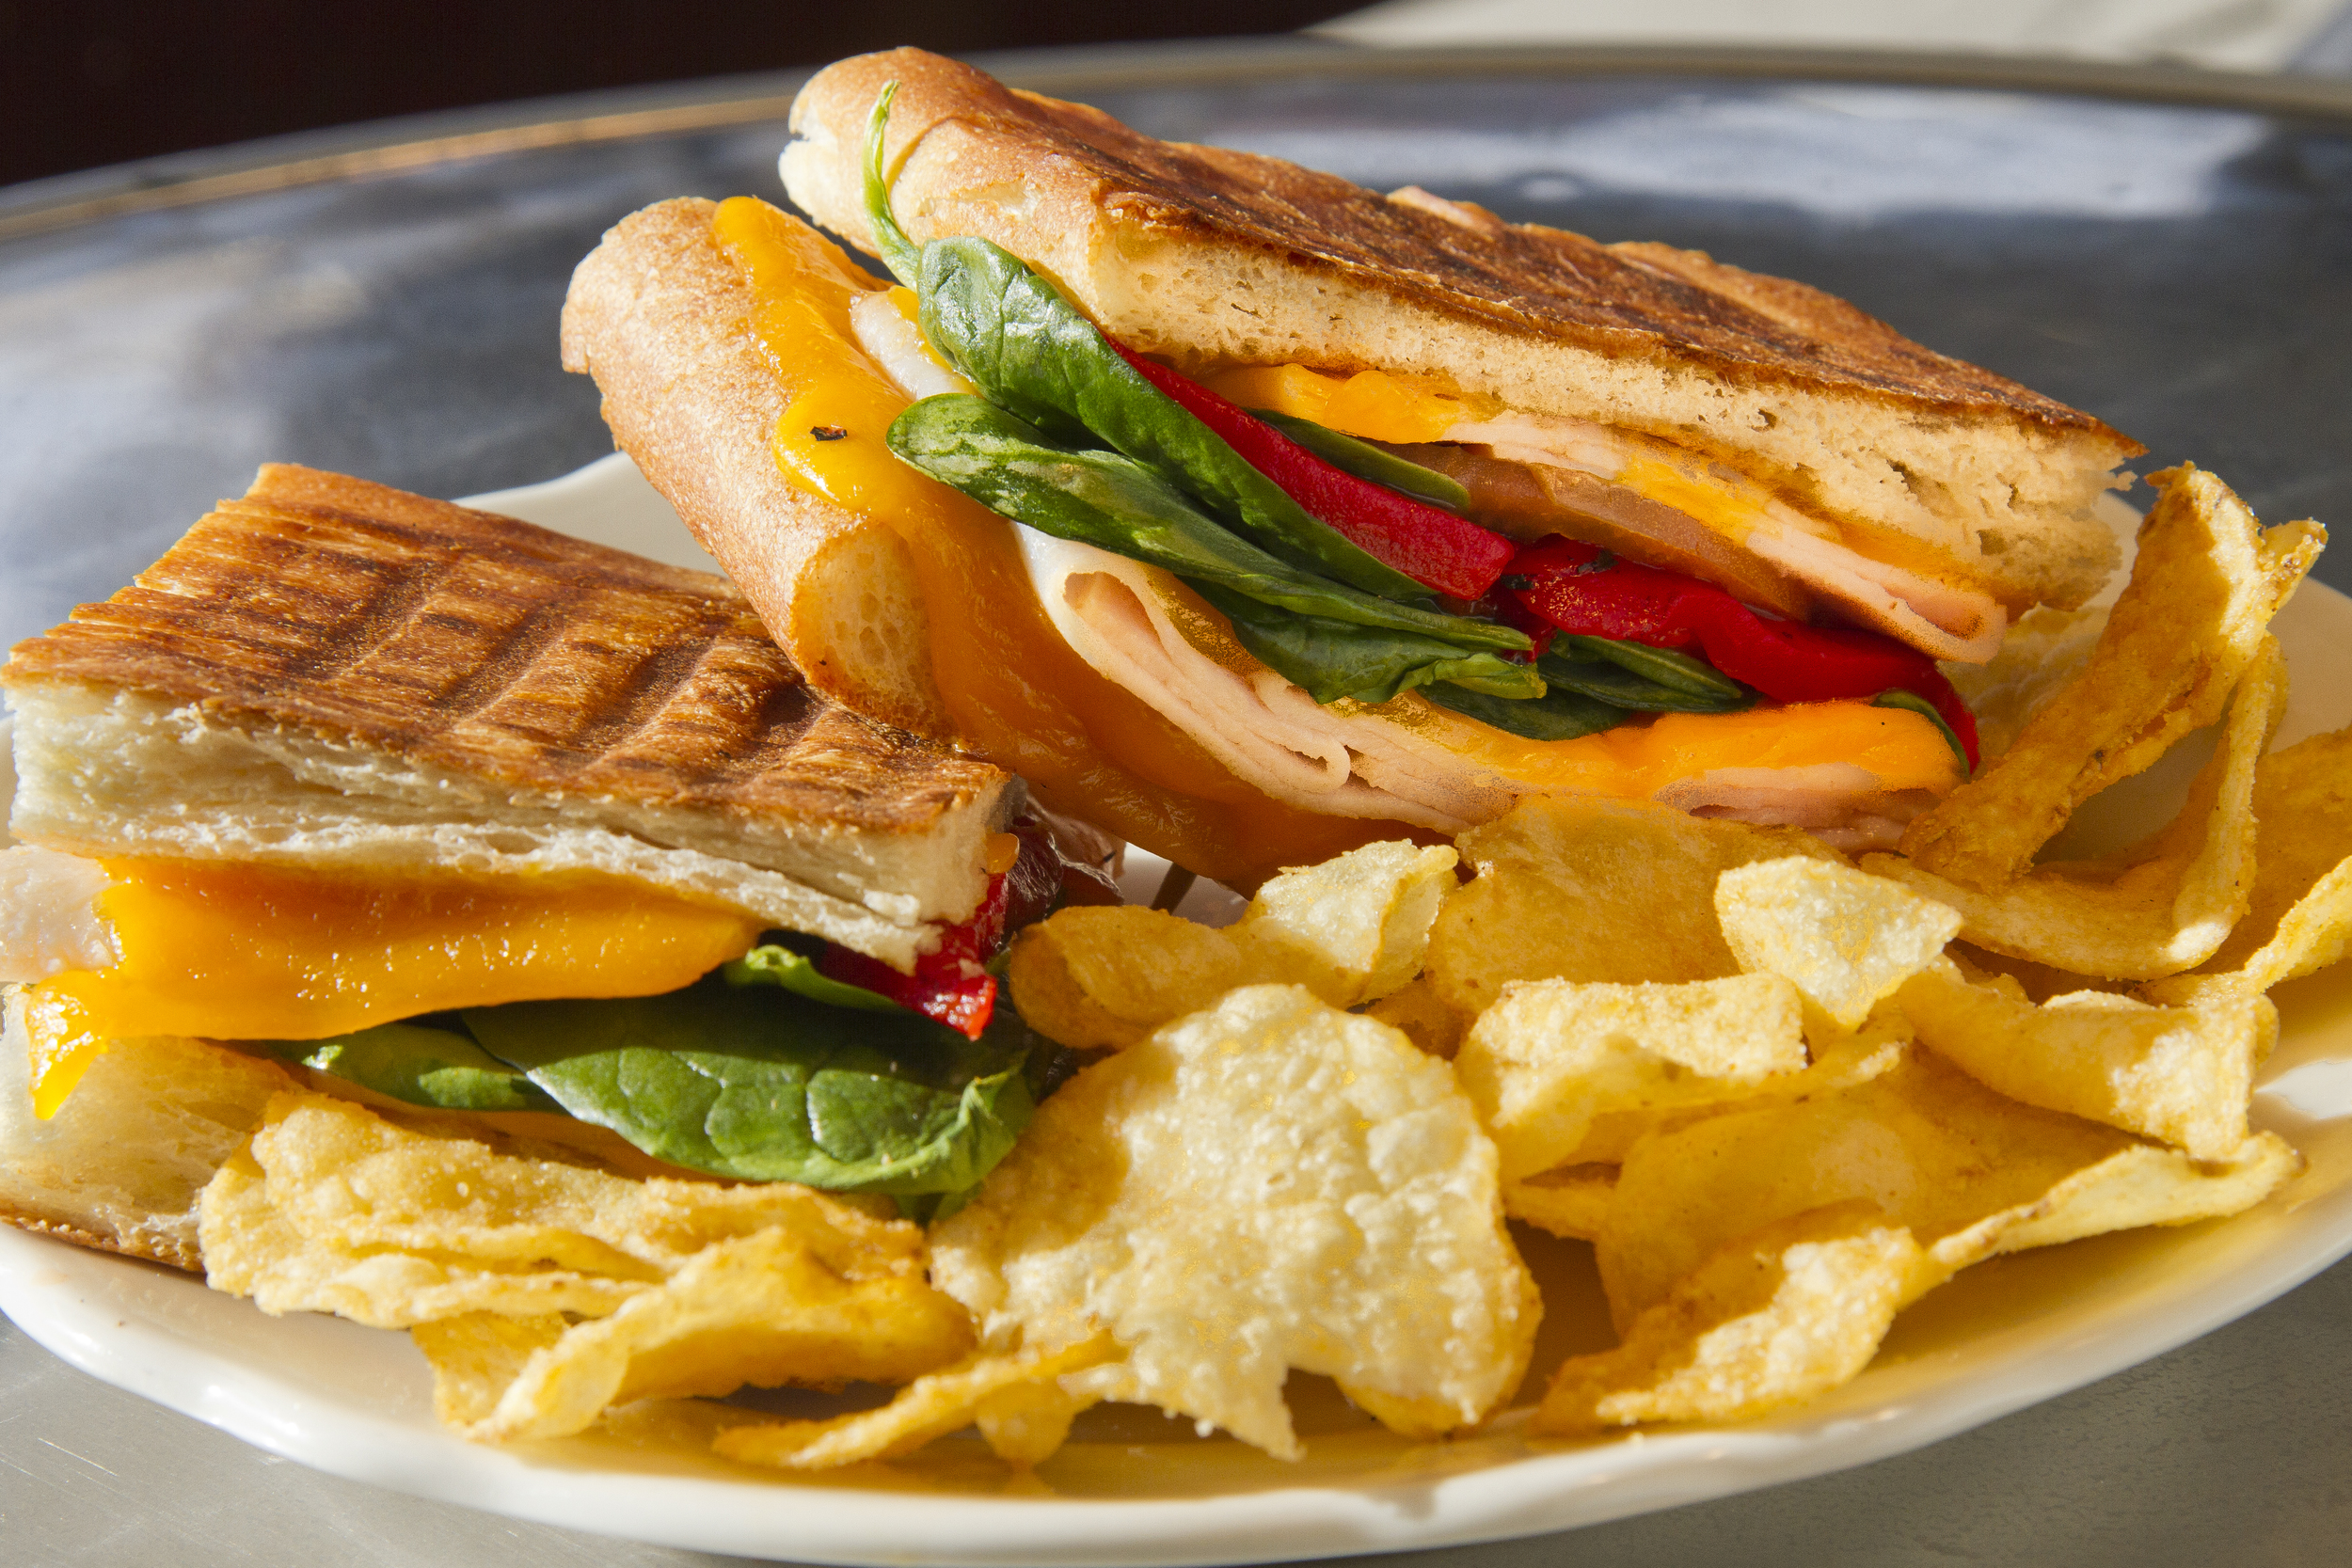 House-made panini sandwiches